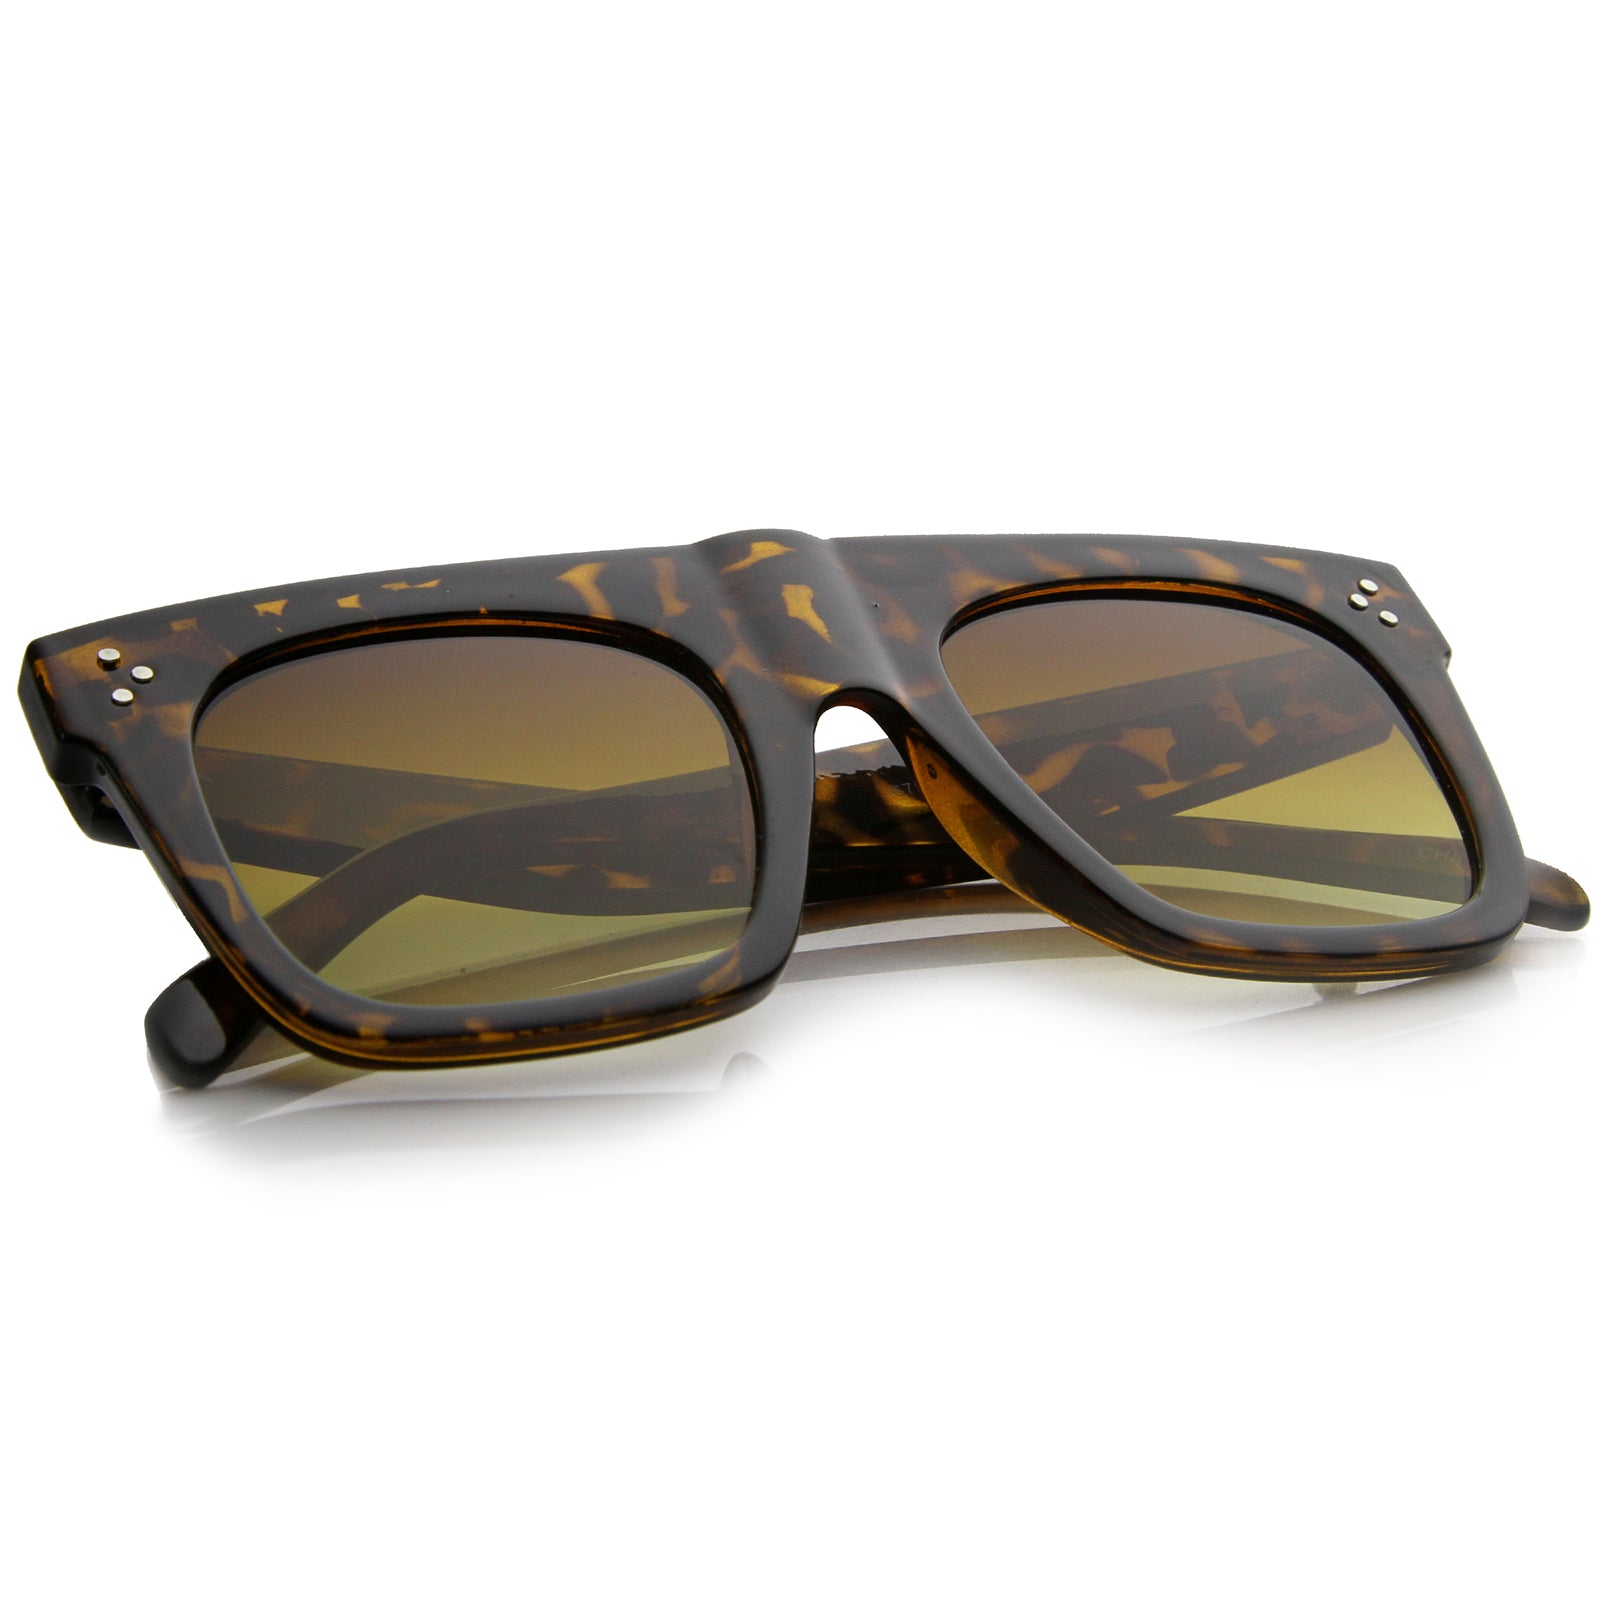 Modern Fashion Bold Flat Top Square Horn Rimmed Sunglasses 50mm - sunglass.la - 4